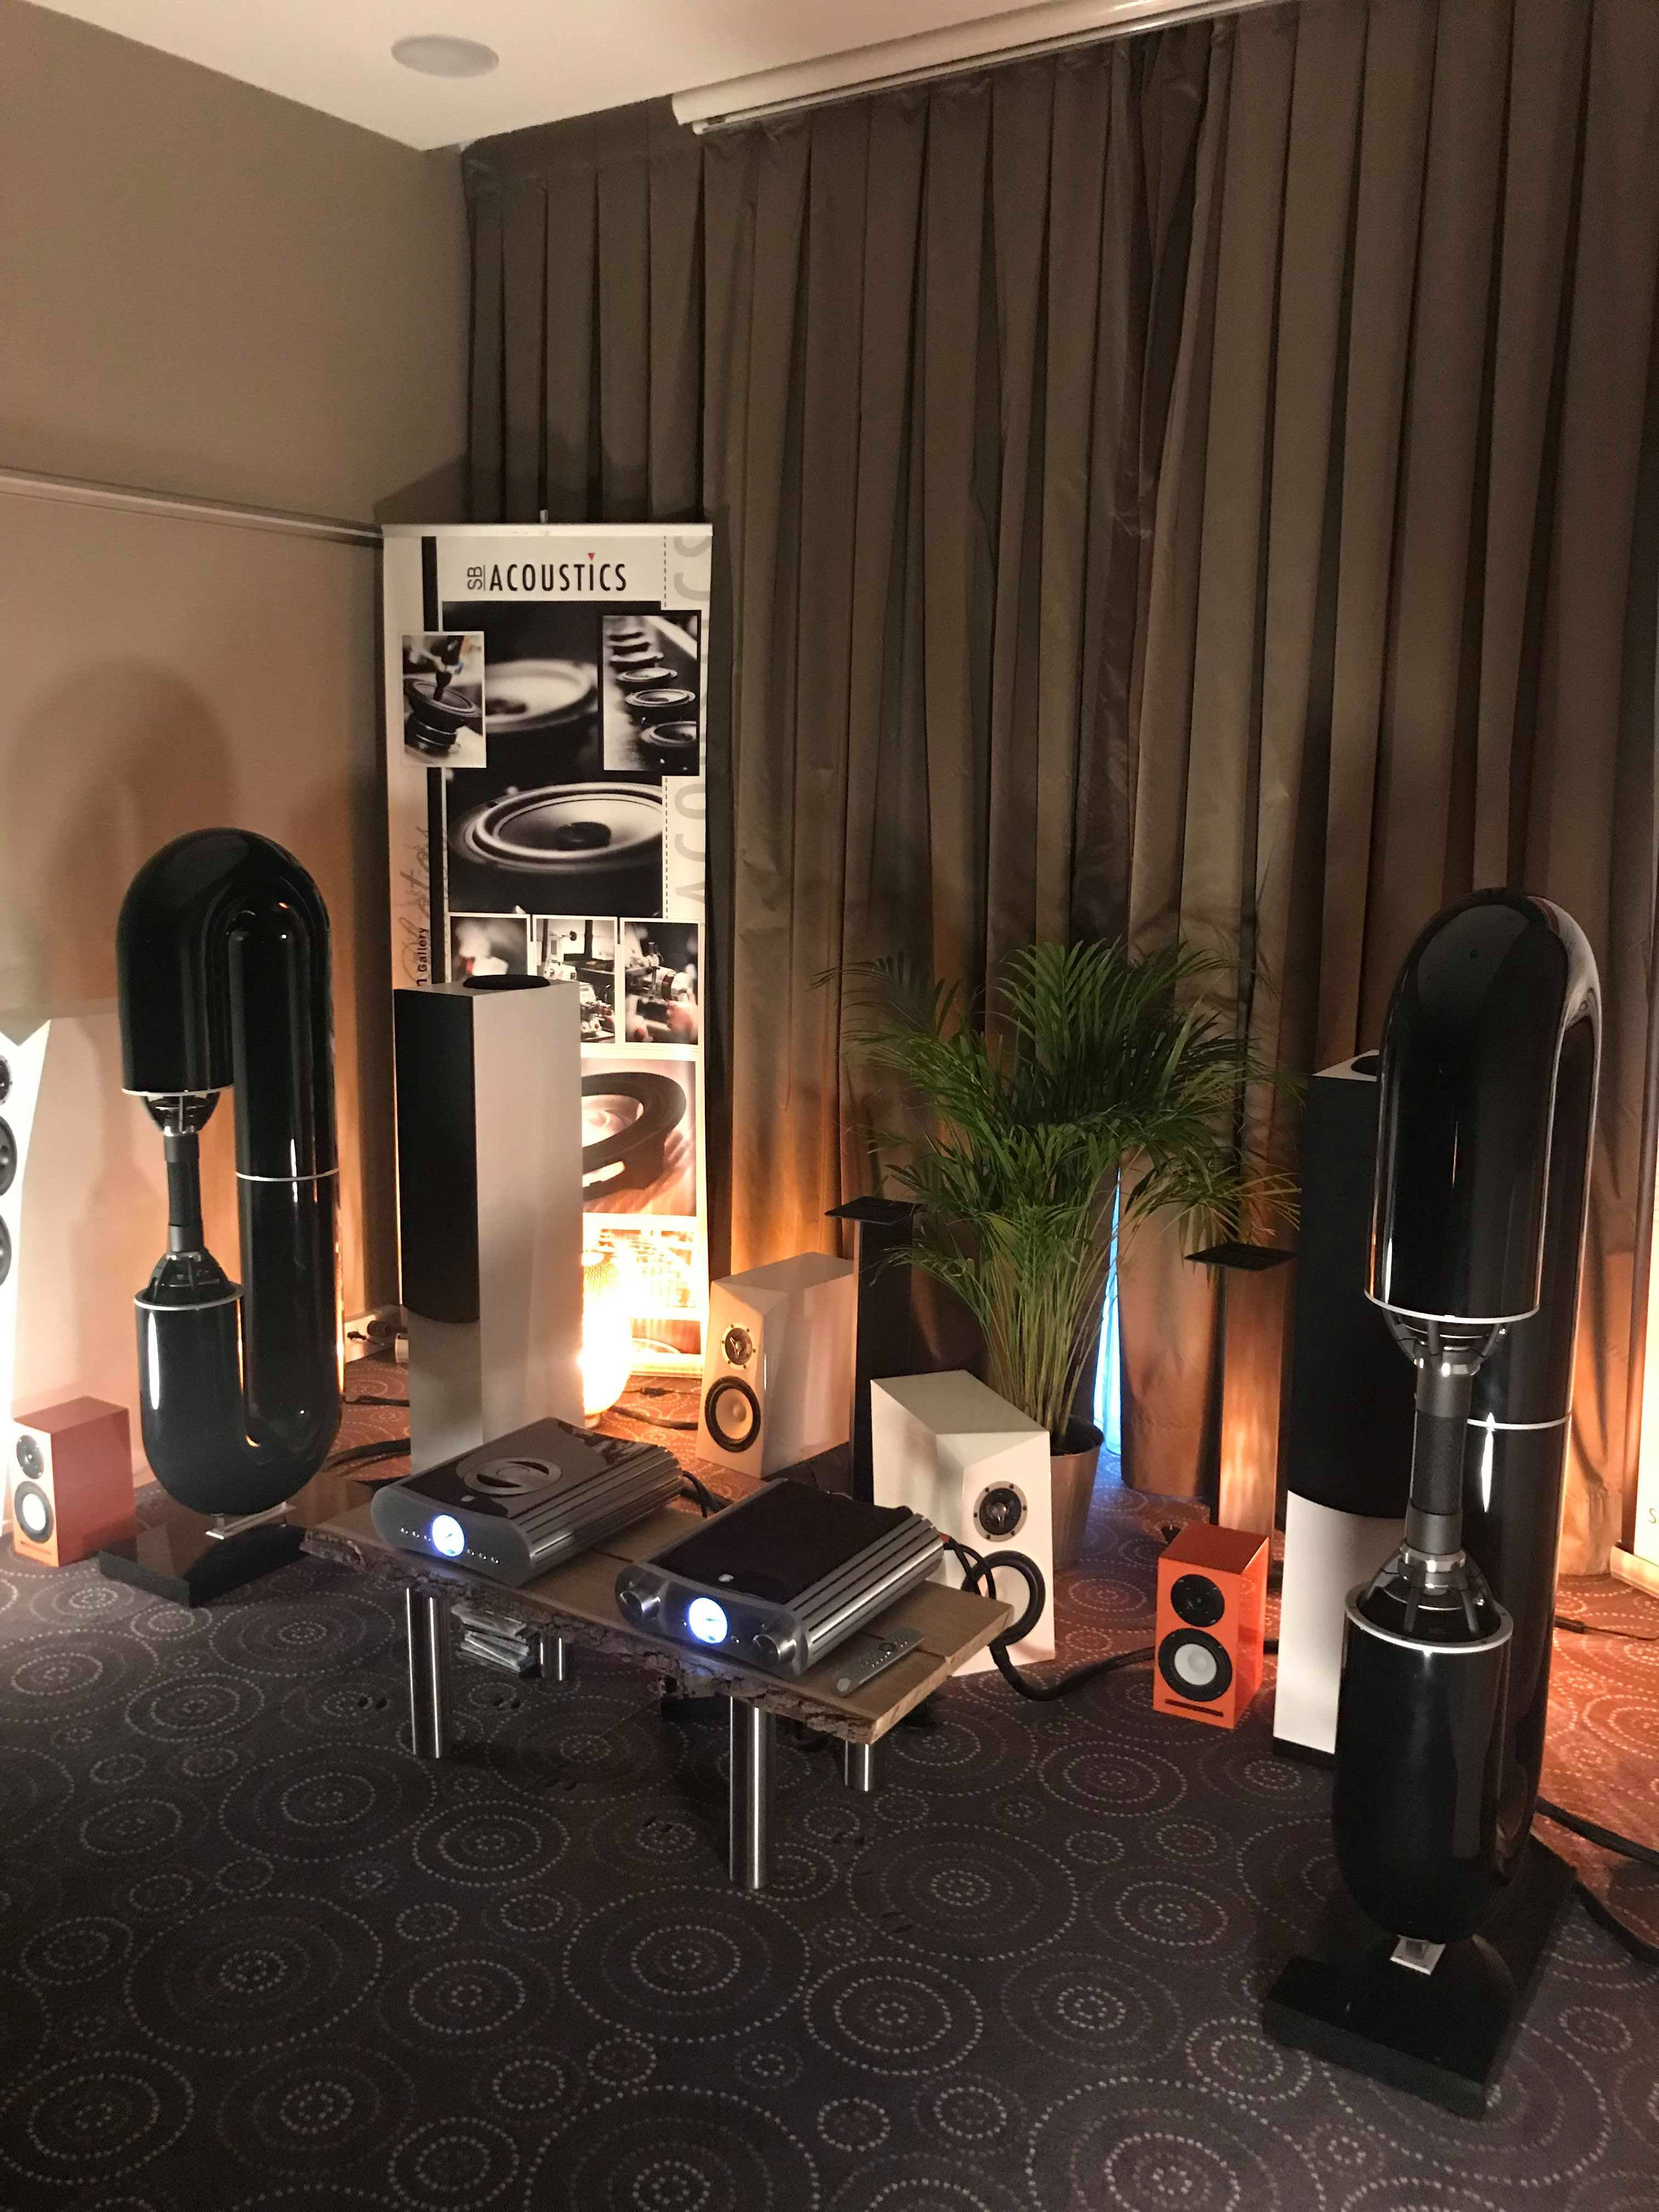 Https Hifishark Images S3 Eu West 1 Amazonaws Com Articles Cphhighend2019 9 Jpg In 2020 Home Decor Audiophile Systems Home Search by popular brands such as accuphase, hegel, krell, luxman, mark levinson and sonus faber. pinterest